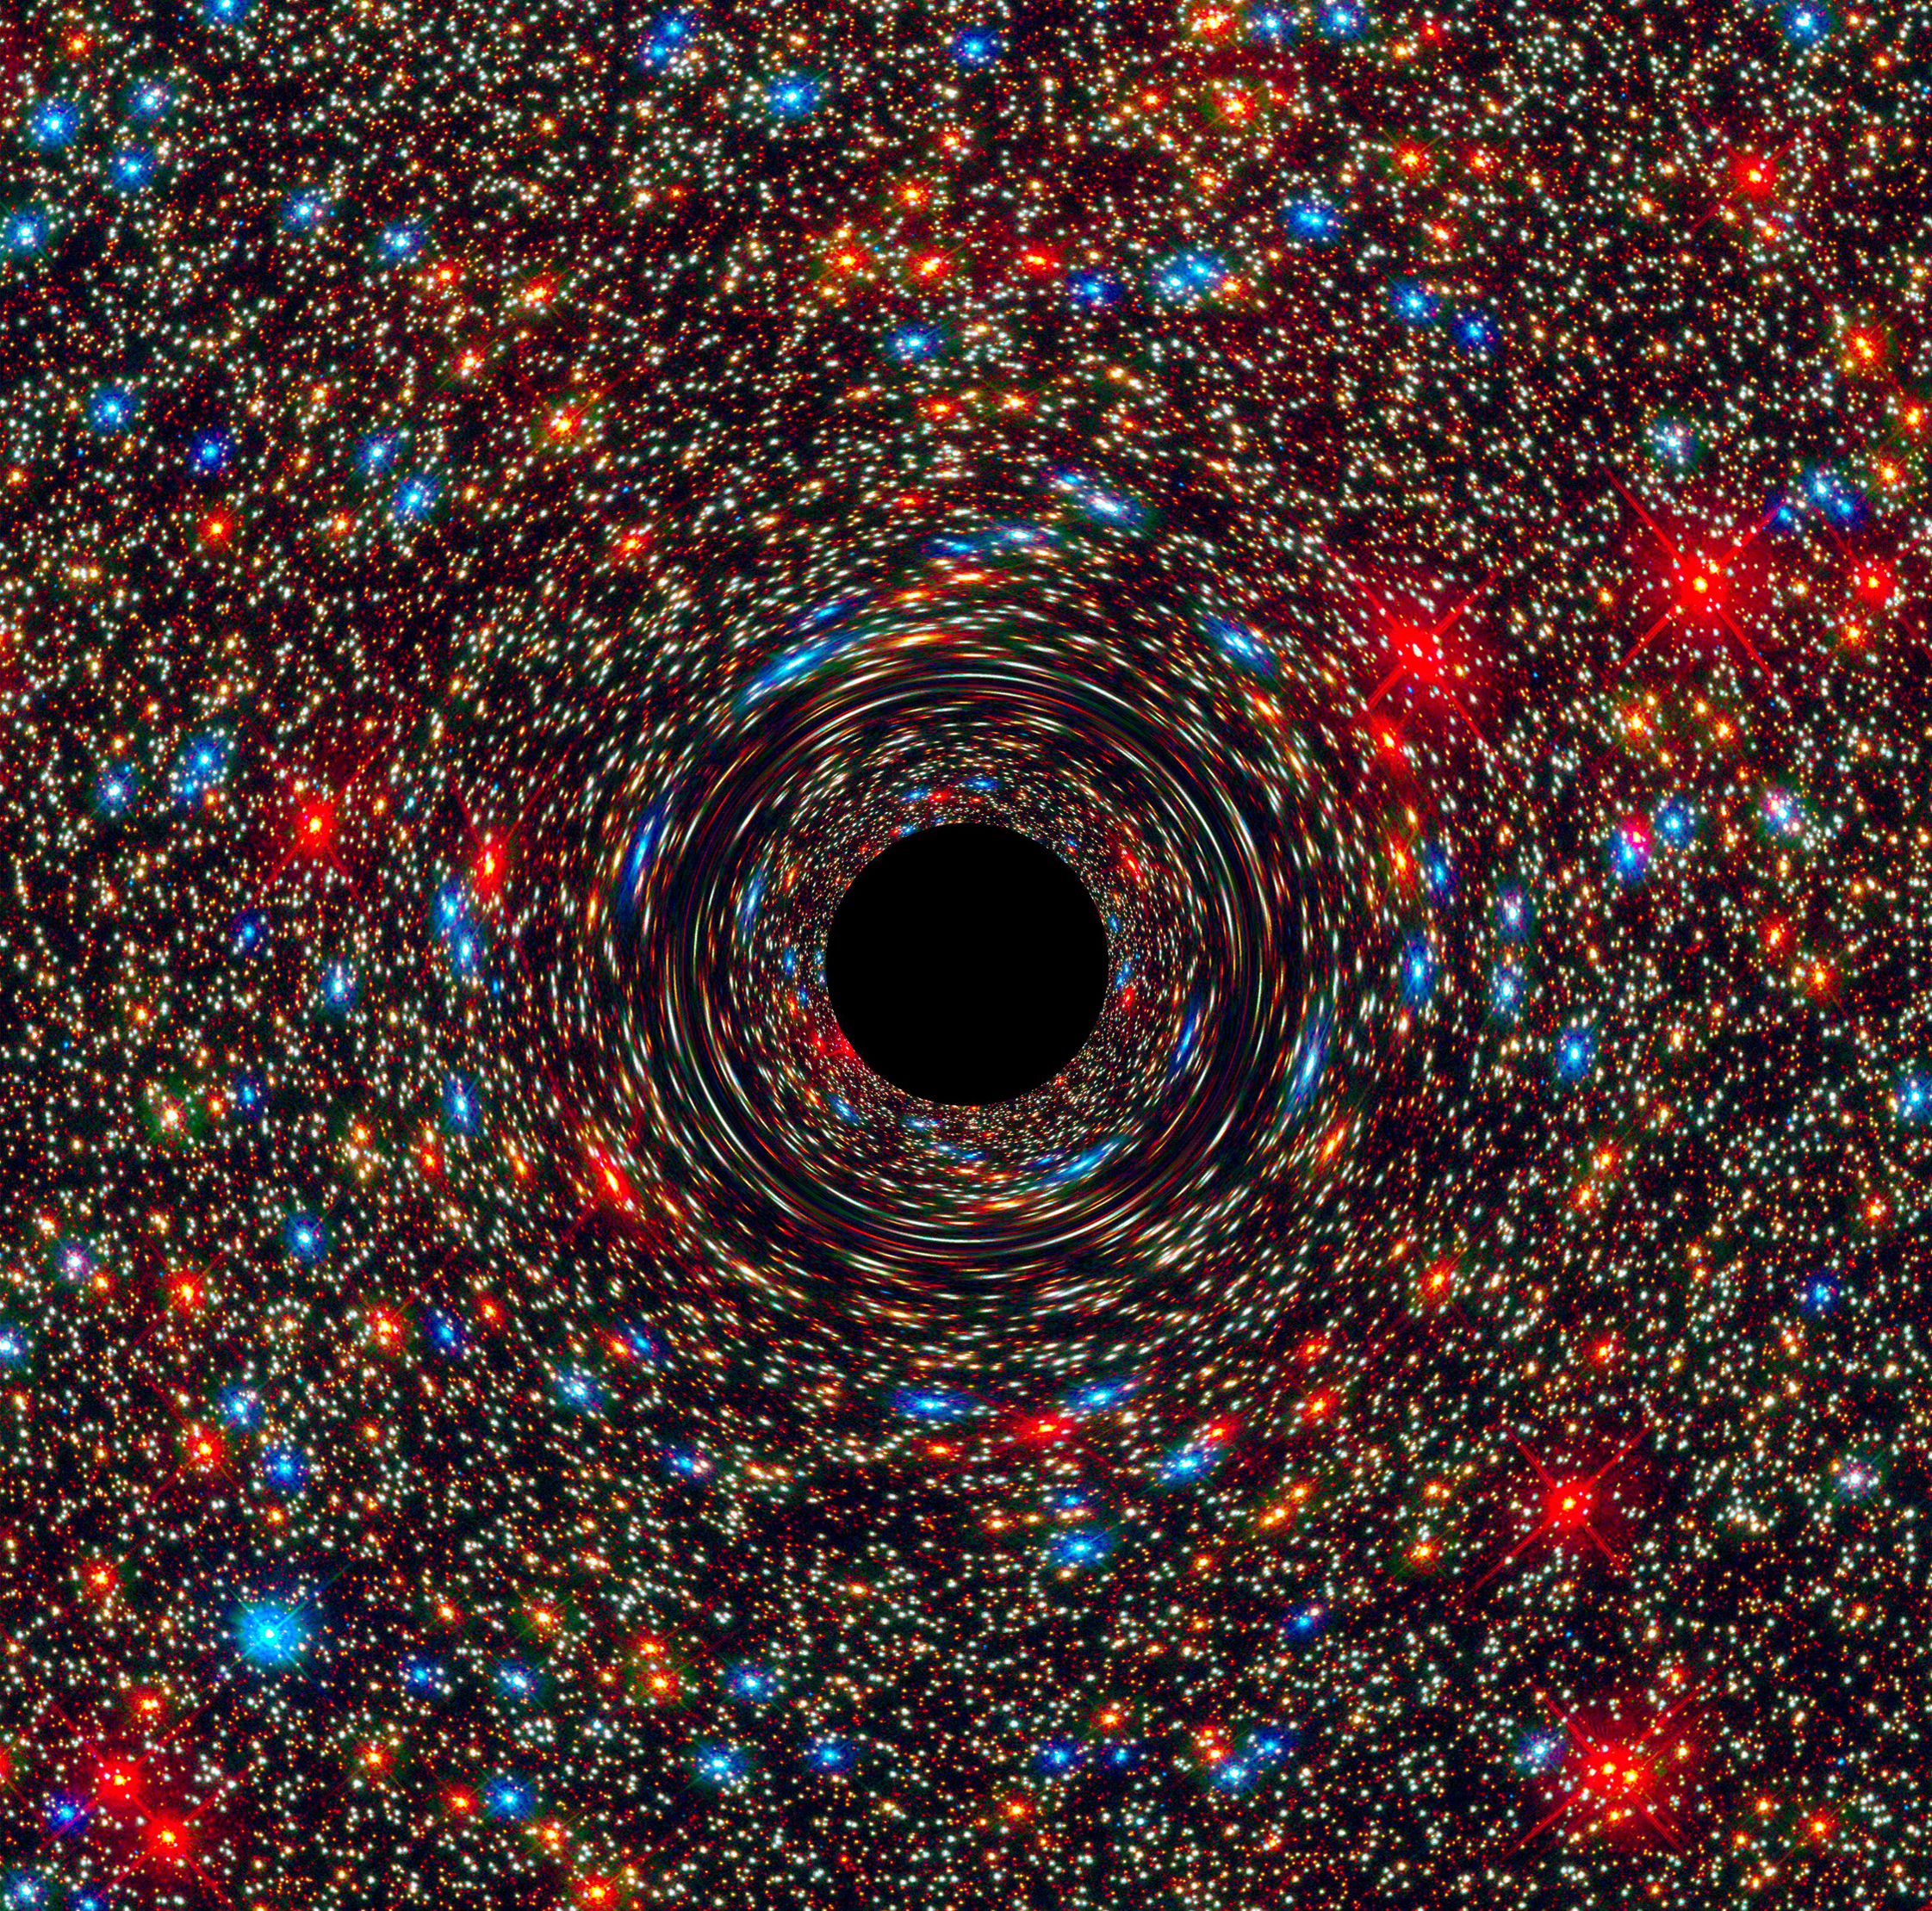 Computer-Simulated Image of a Supermassive Black Hole | NASA